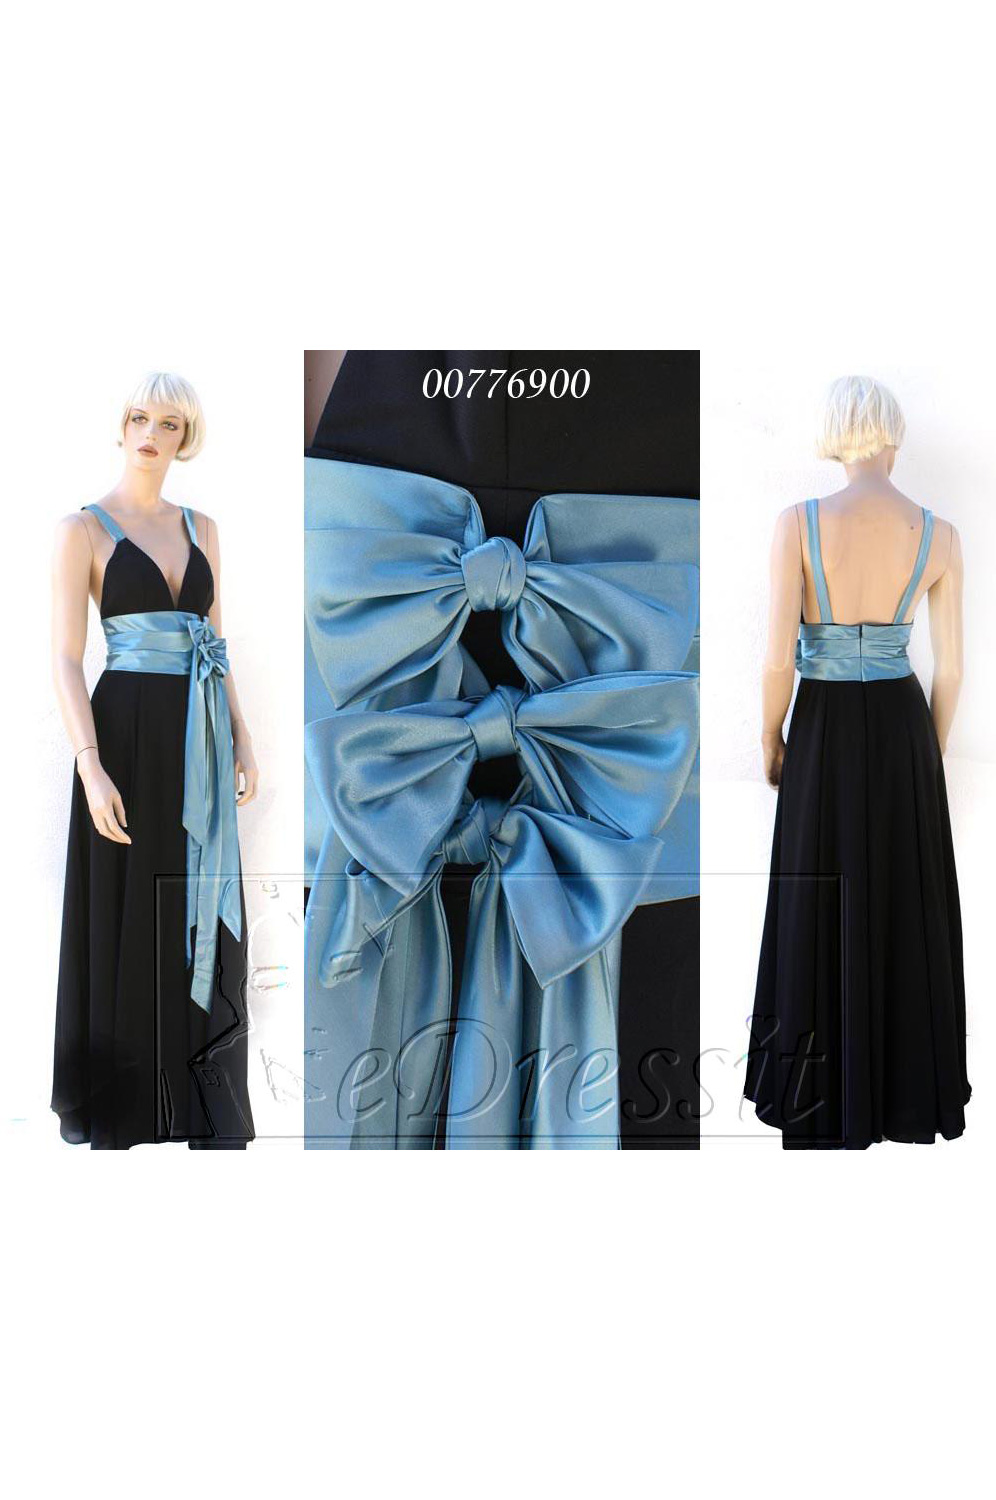 ON SALE ! eDressit Evening Dress (00776900s)